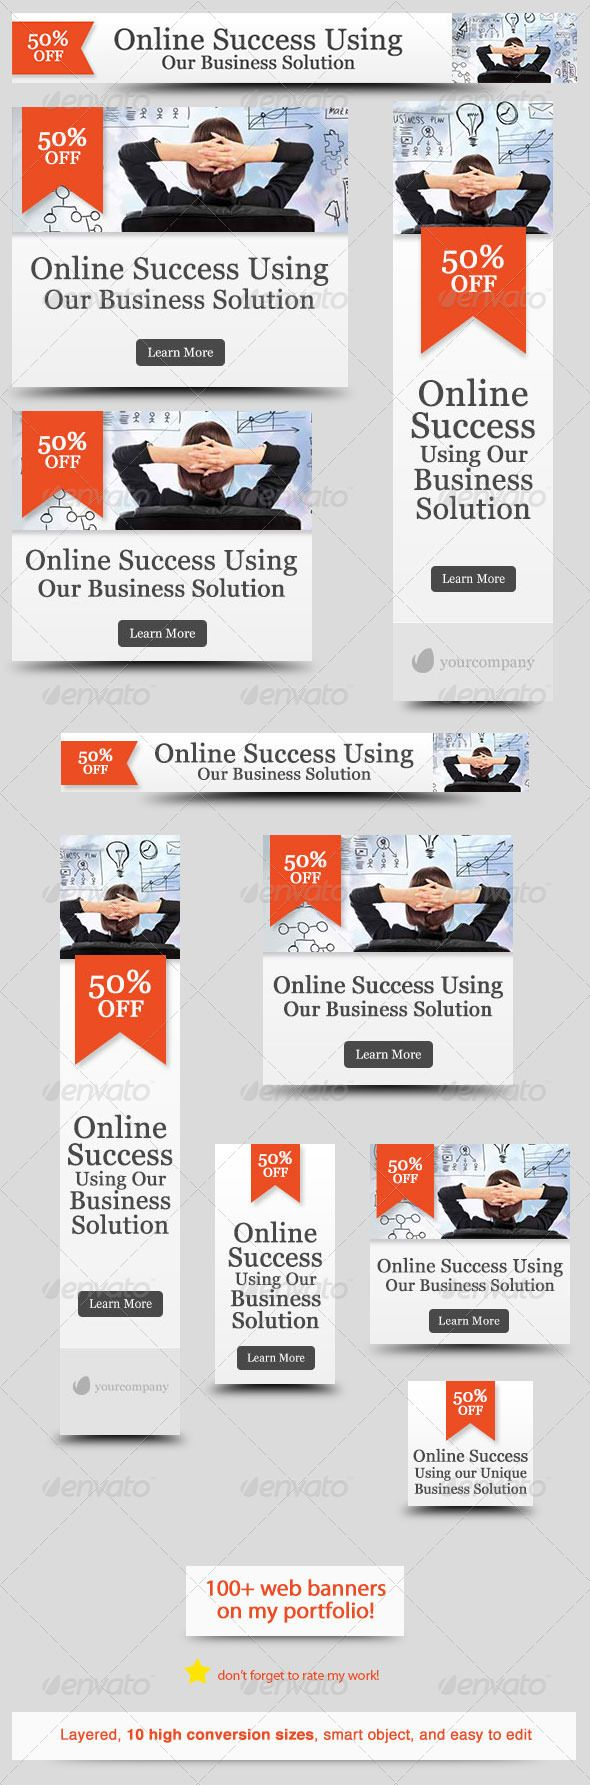 Corporate Web Banner Design Template 29 | Web banner design and ...